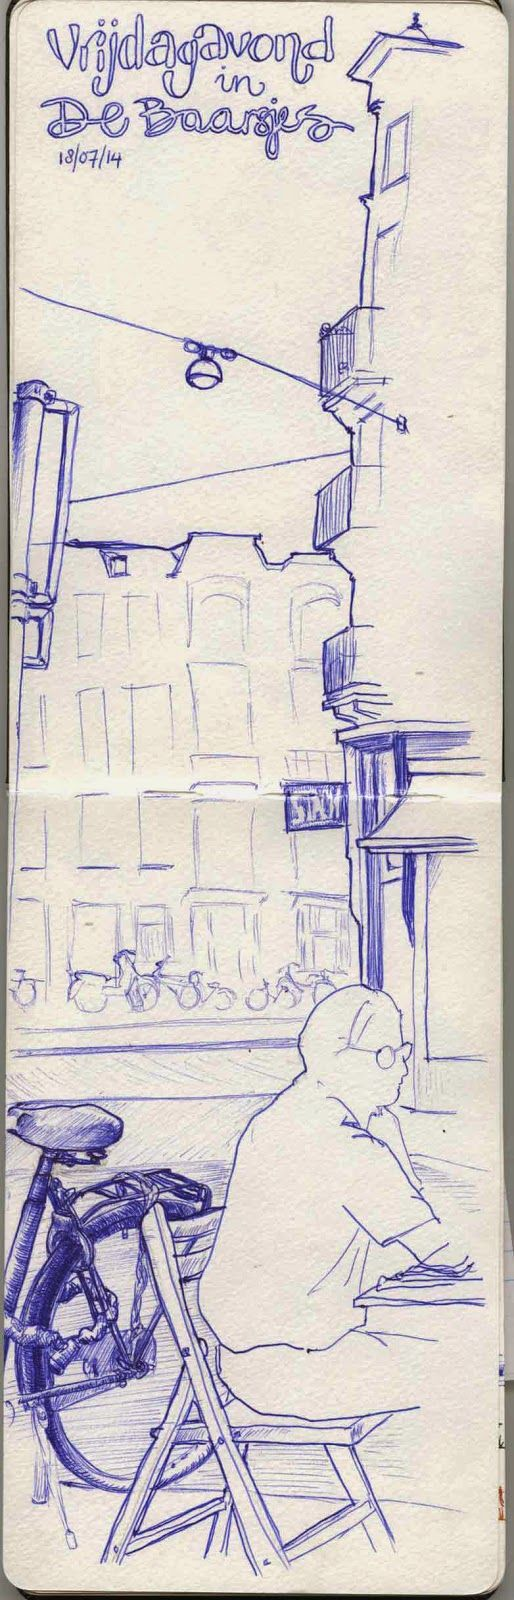 Urban Sketching: Finding focus - Urban sketching 1 - Sketchbook Skool: Boot Kamp